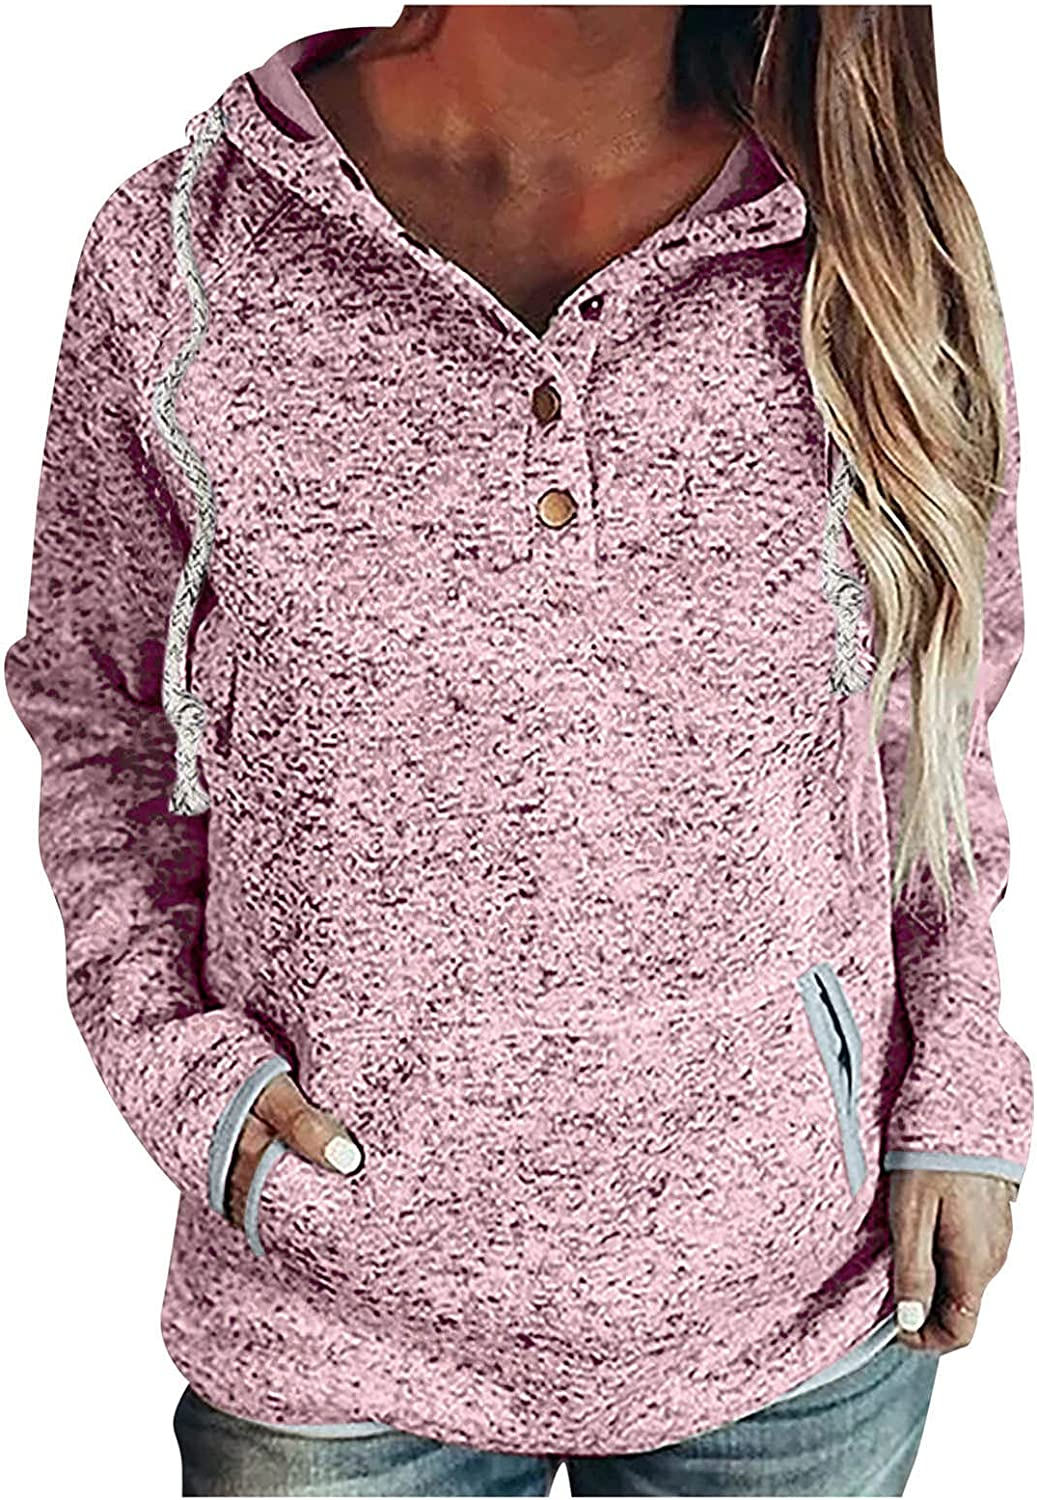 Women's Casual Long Sleeve Hoodies Round Neck Loose Fit Blouses T Shirts Sweatshirts Pullover Tops Shirts with Pocket